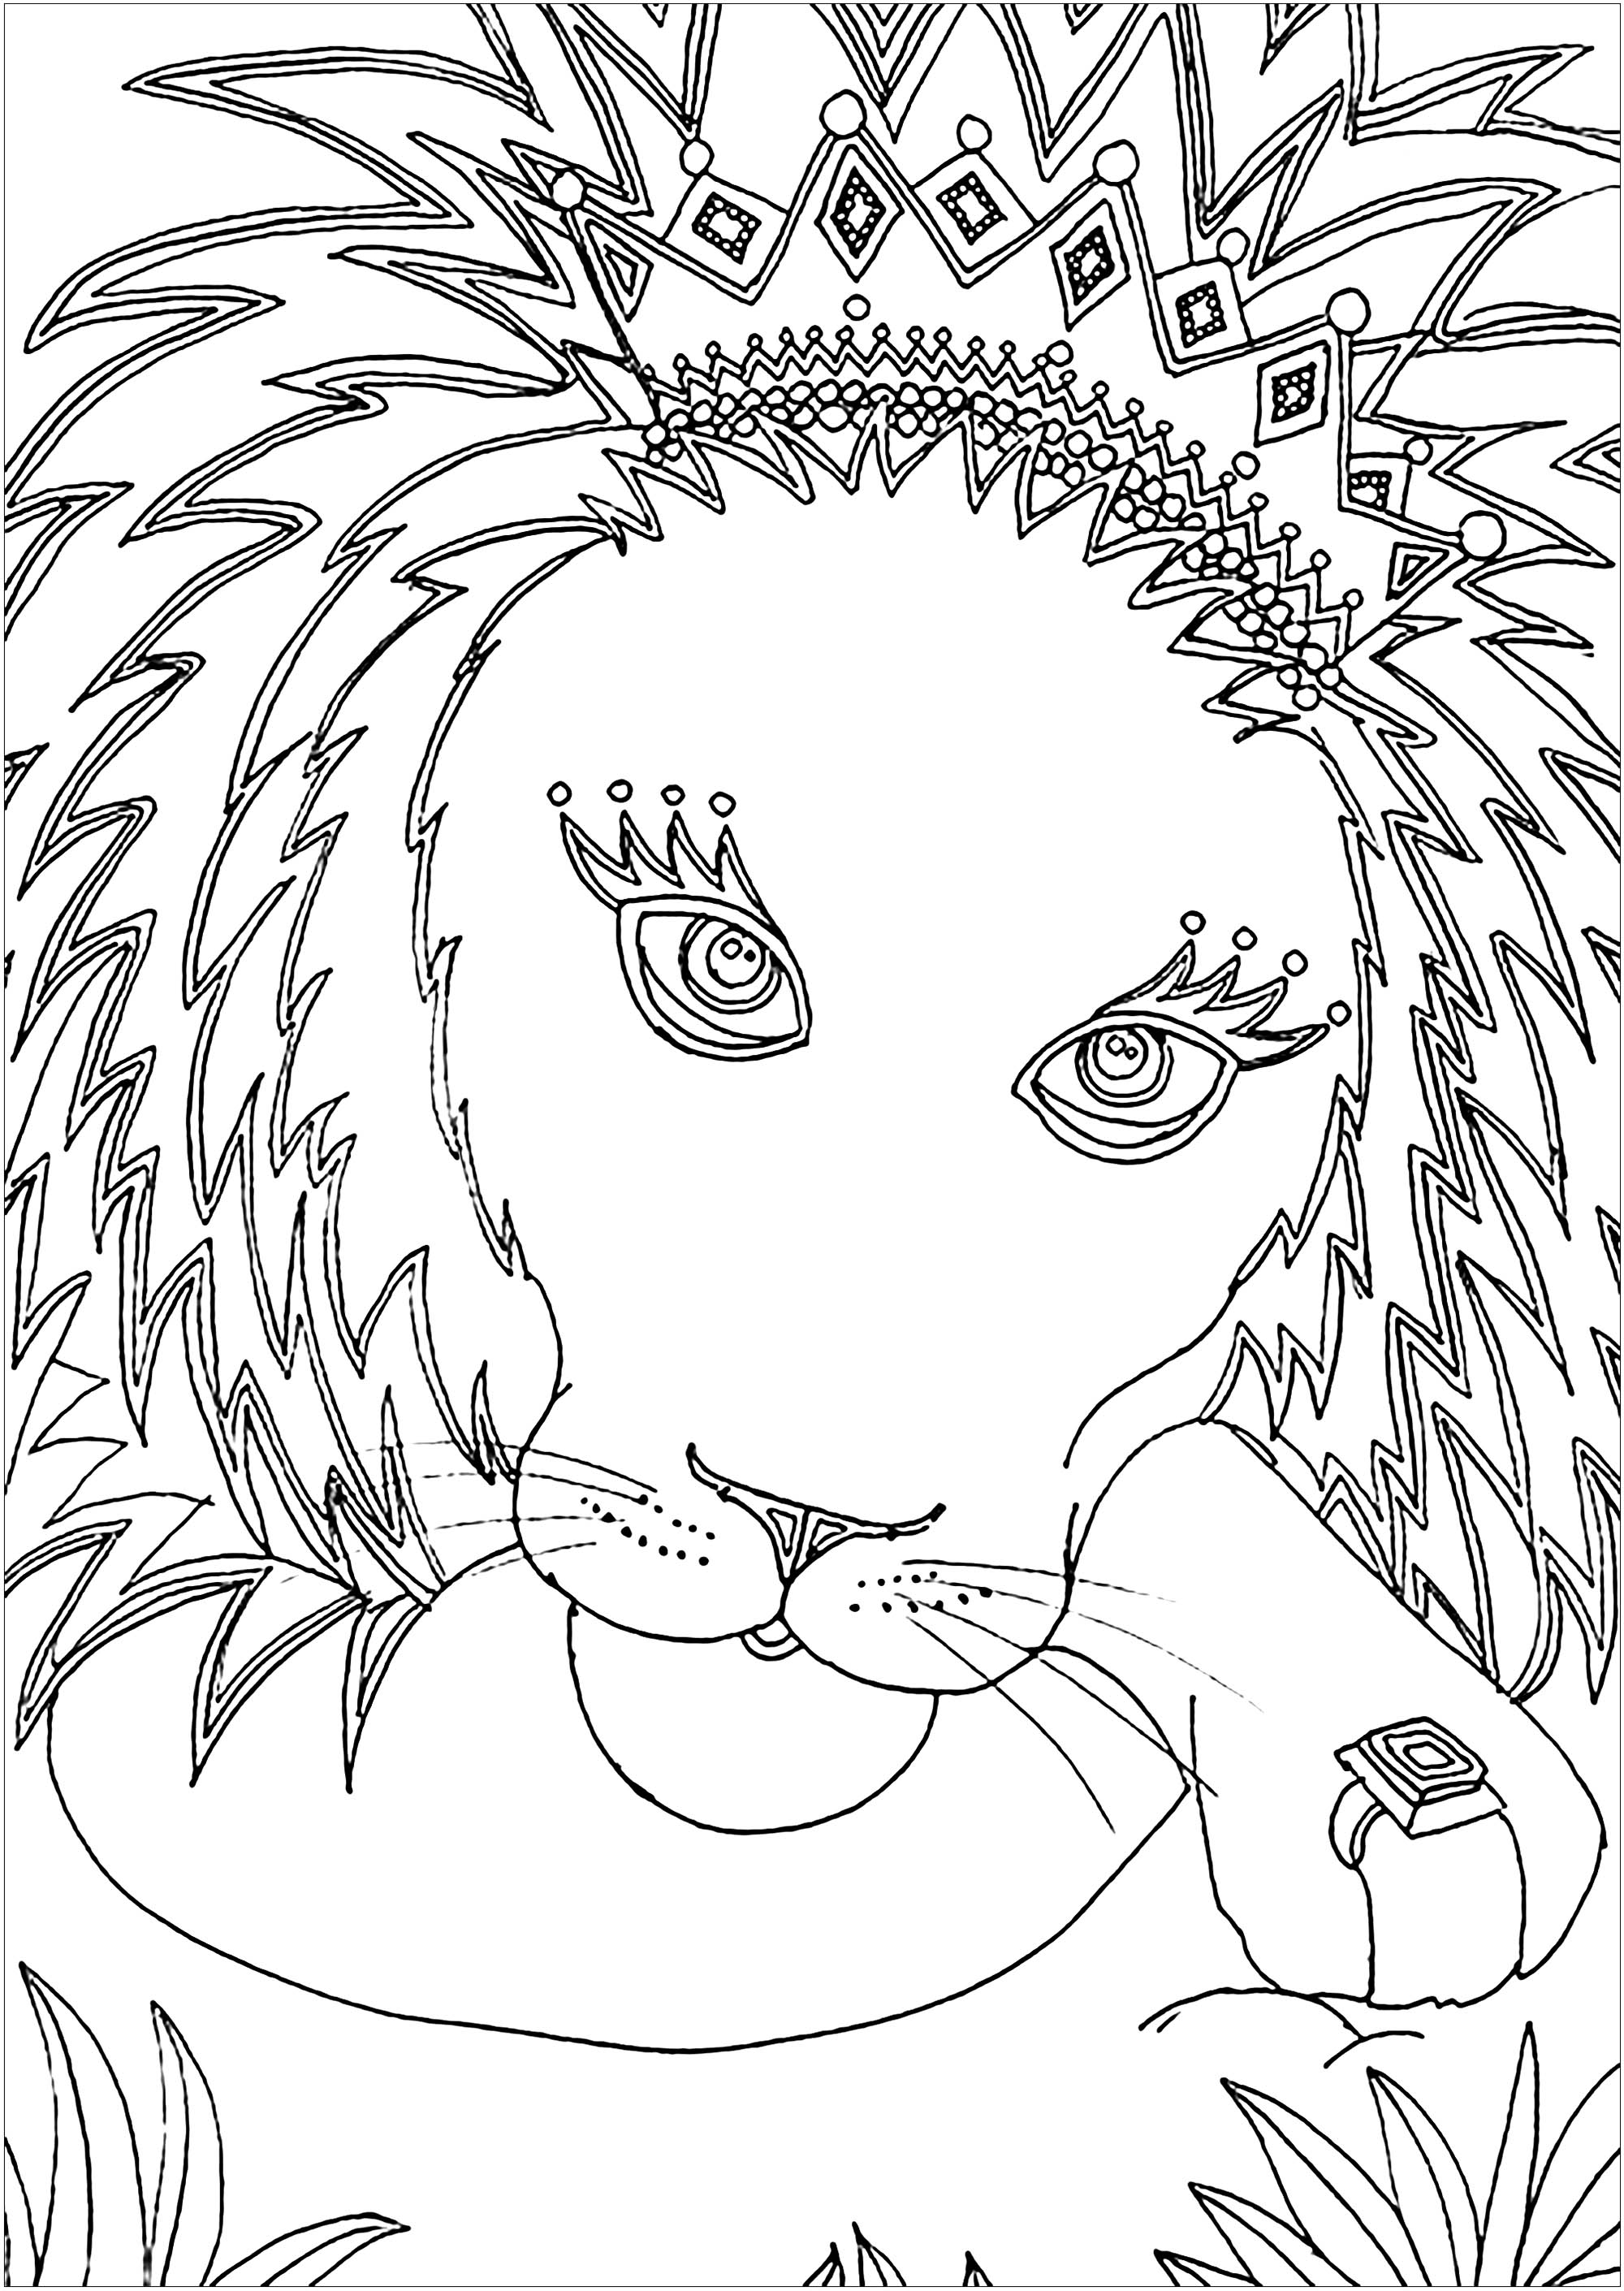 lion coloring pages lion coloring pages to download and print for free lion pages coloring